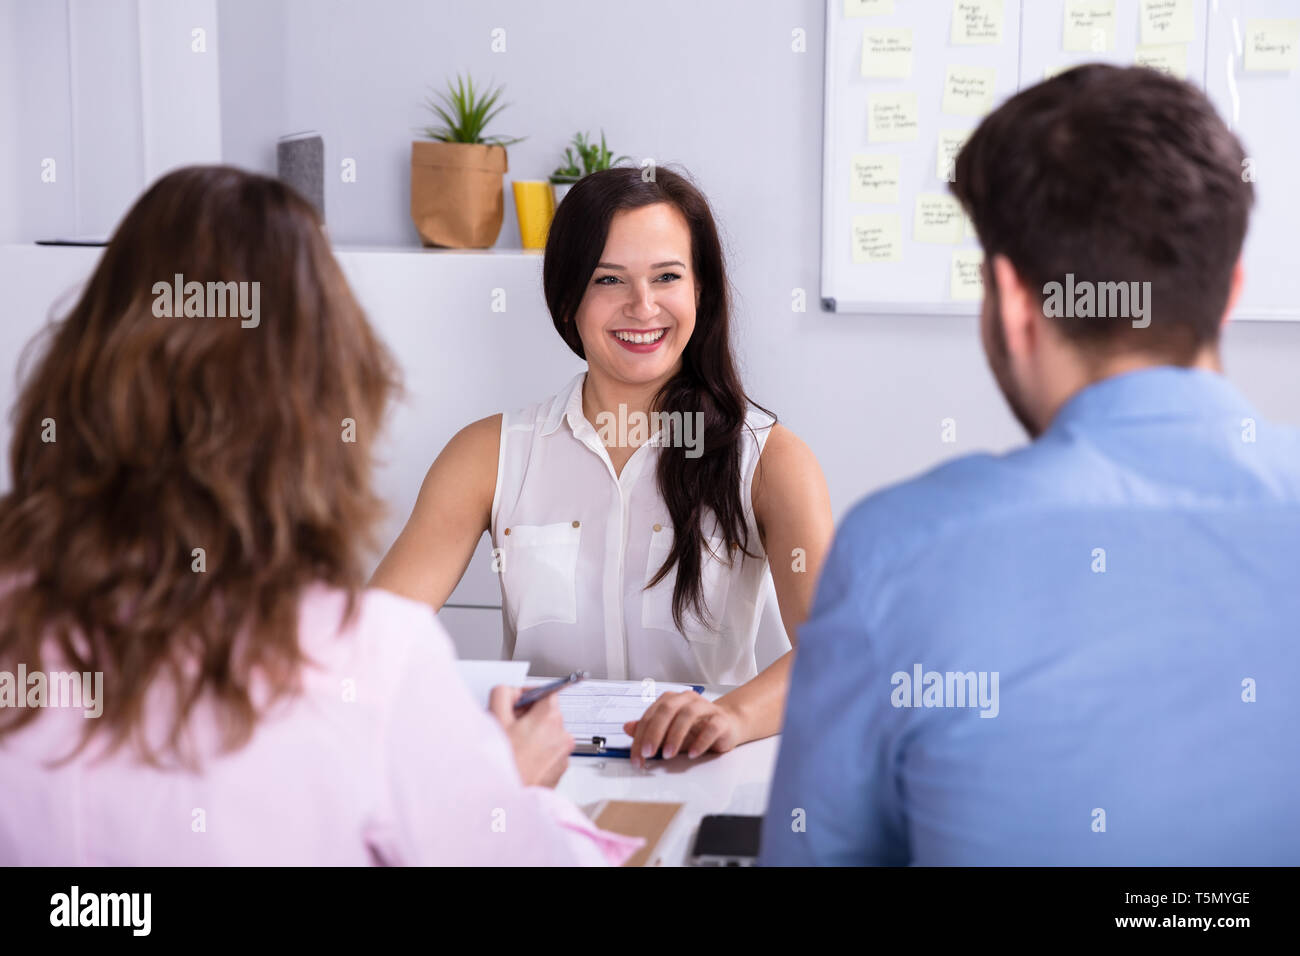 Businessman And Businesswoman Taking Interview Of Young Smiling Woman - Stock Image